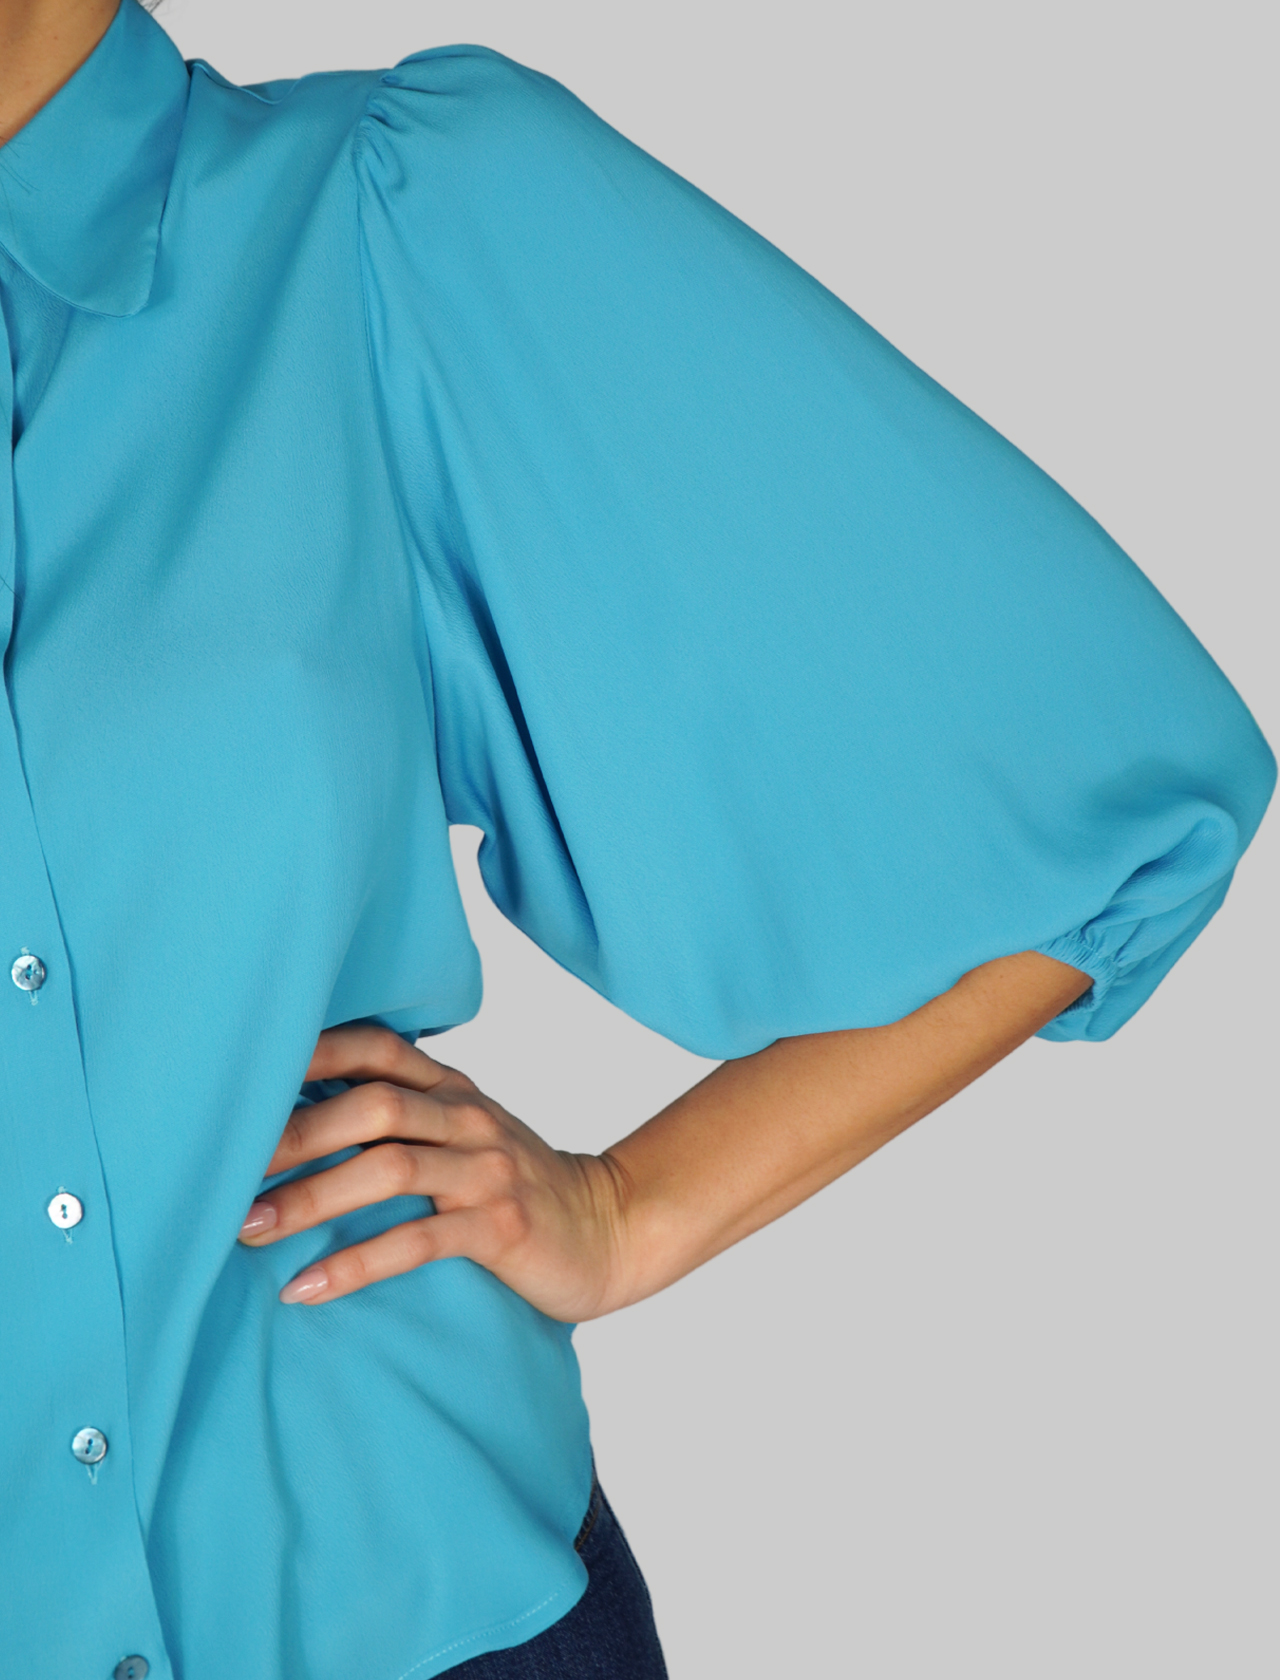 Women's Clothing Turquoise Shirt Puff Sleeves Mercì | Shirts and tops | C305028